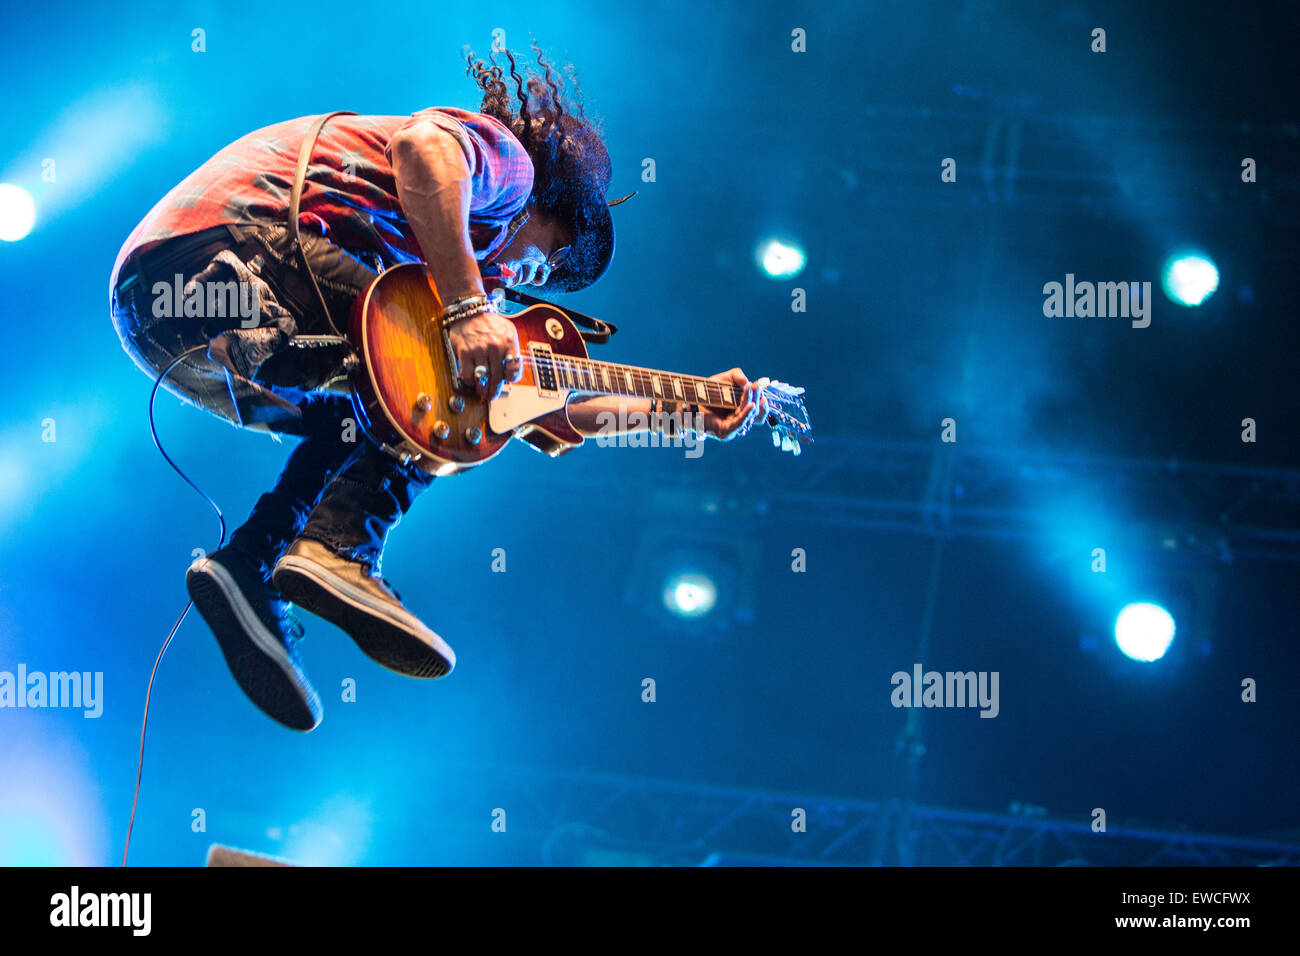 Slash ft. Myles Kennedy and The Conspirators perform live at Pinkpop Festival 2015 in Netherlands © Roberto - Stock Image